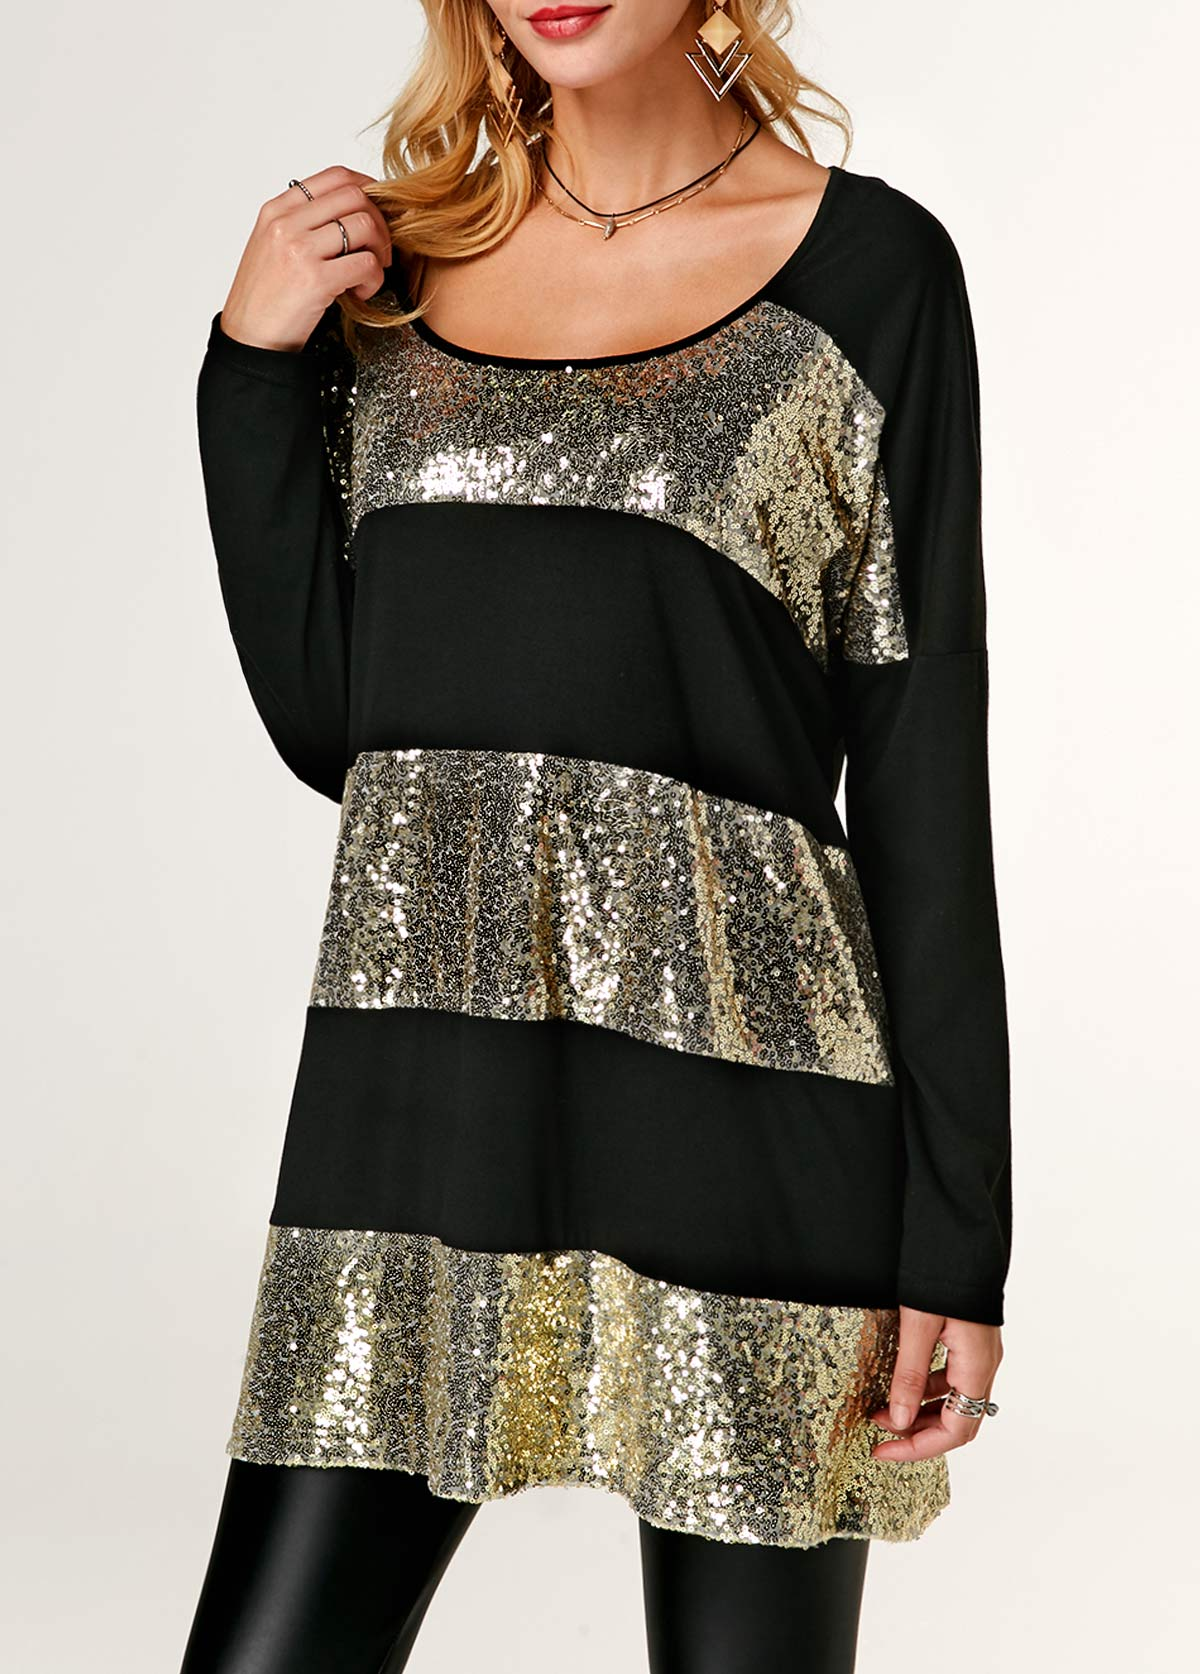 ROTITA Long Sleeve Sequin Embellished Round Neck Blouse